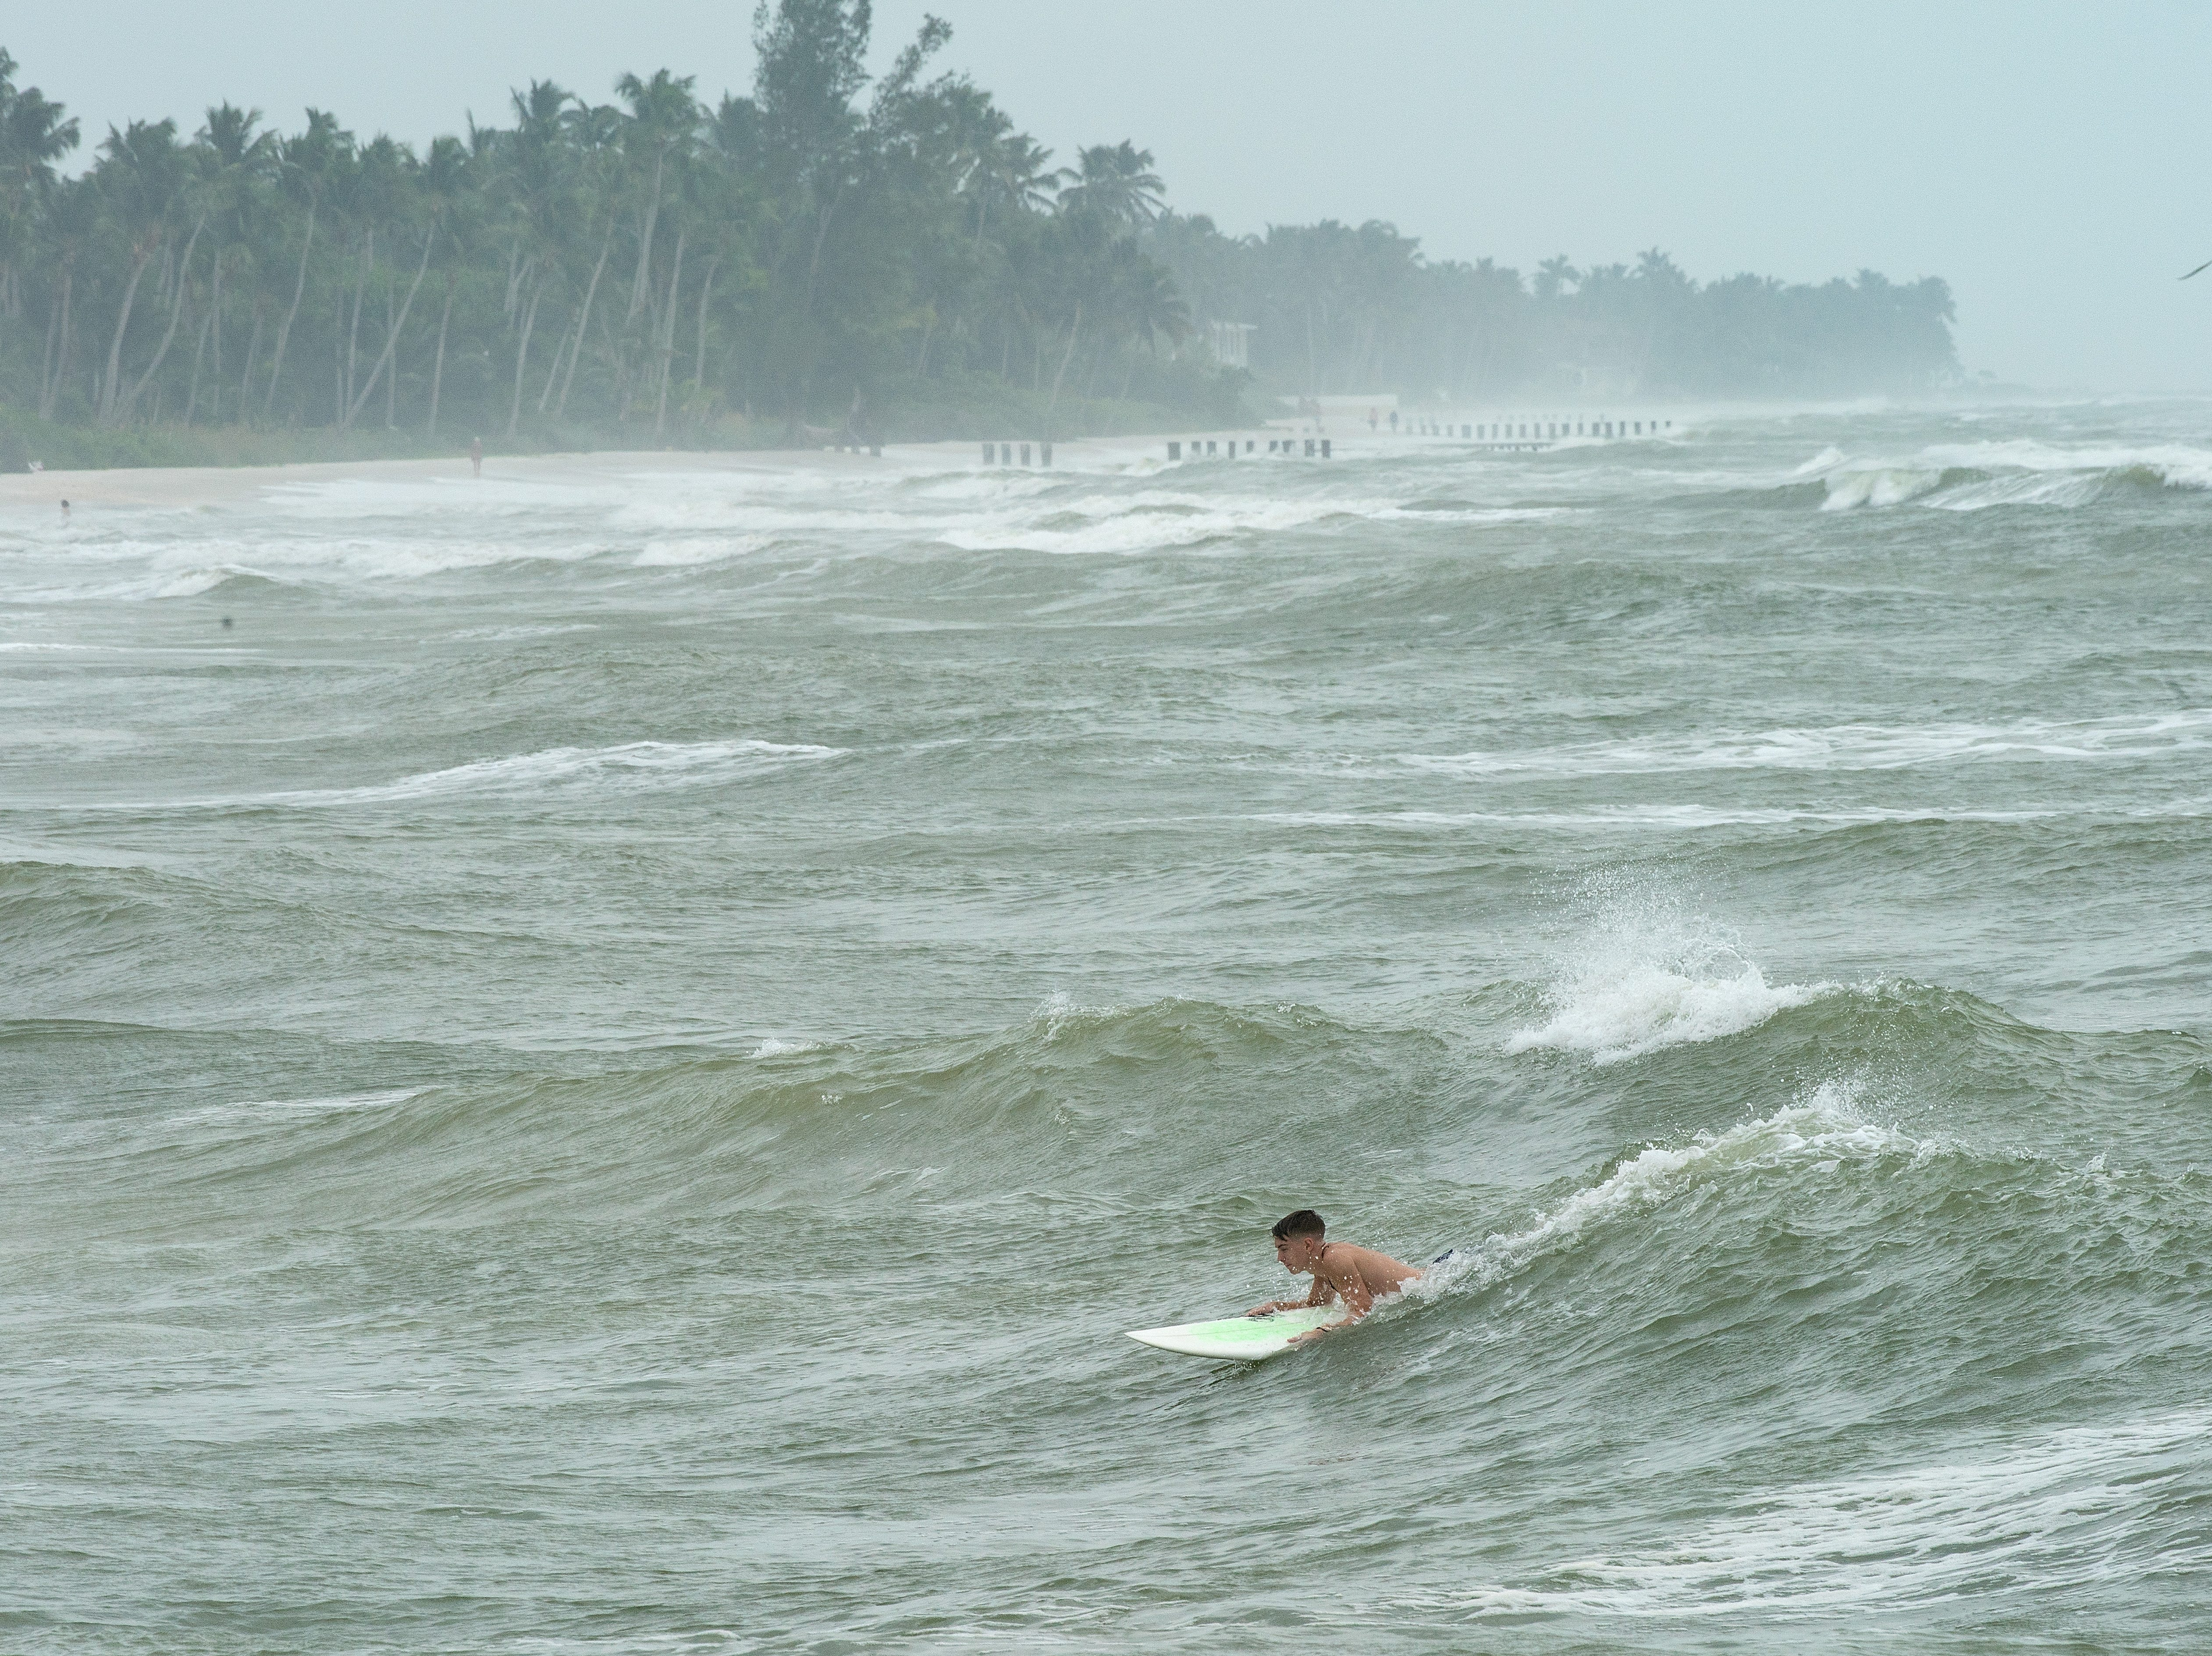 A surfer braving strong winds attempts to ride a large wave as Hurricane Michael, even from hundreds of miles away, continues to push water ashore near the Naples Pier on Wednesday, Oct. 10, 2018.